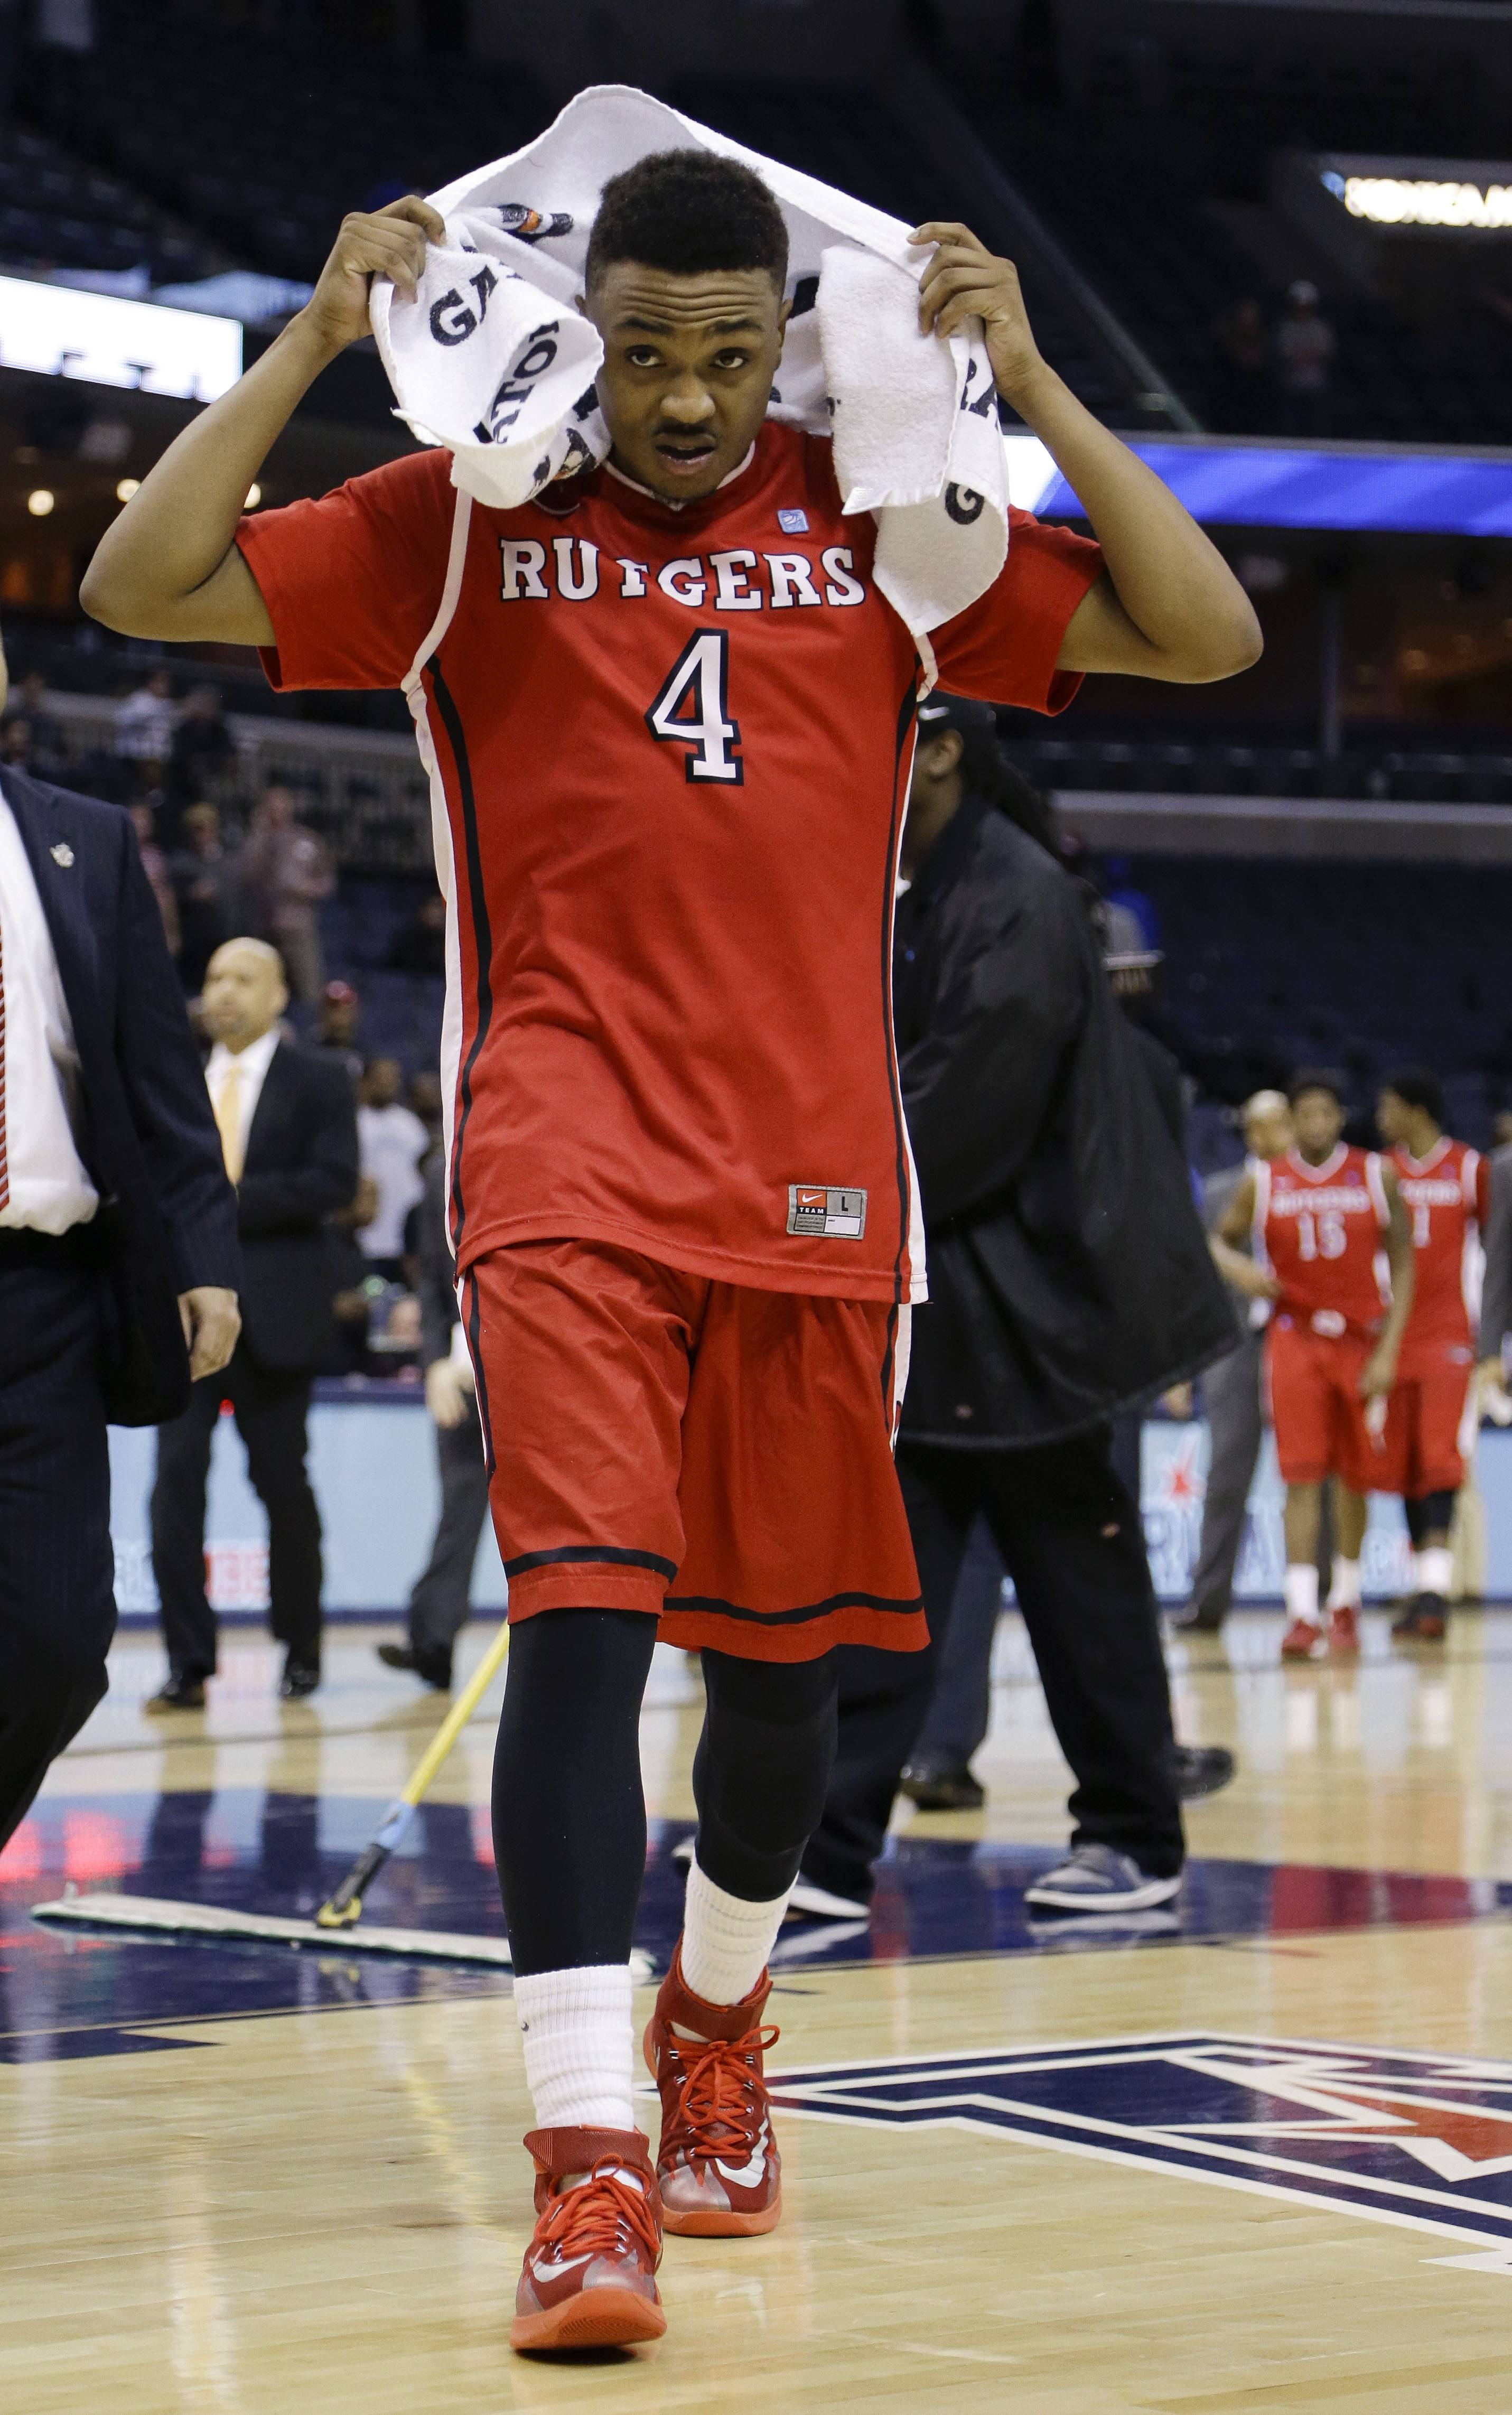 Rutgers guard Myles Mack (4) leaves the court after his team's 92-31 loss to Louisville in an NCAA college basketball game in the quarterfinals of the American Athletic Conference tournament Thursday, March 13, 2014, in Memphis, Tenn. (AP Photo/Mark Humphrey)